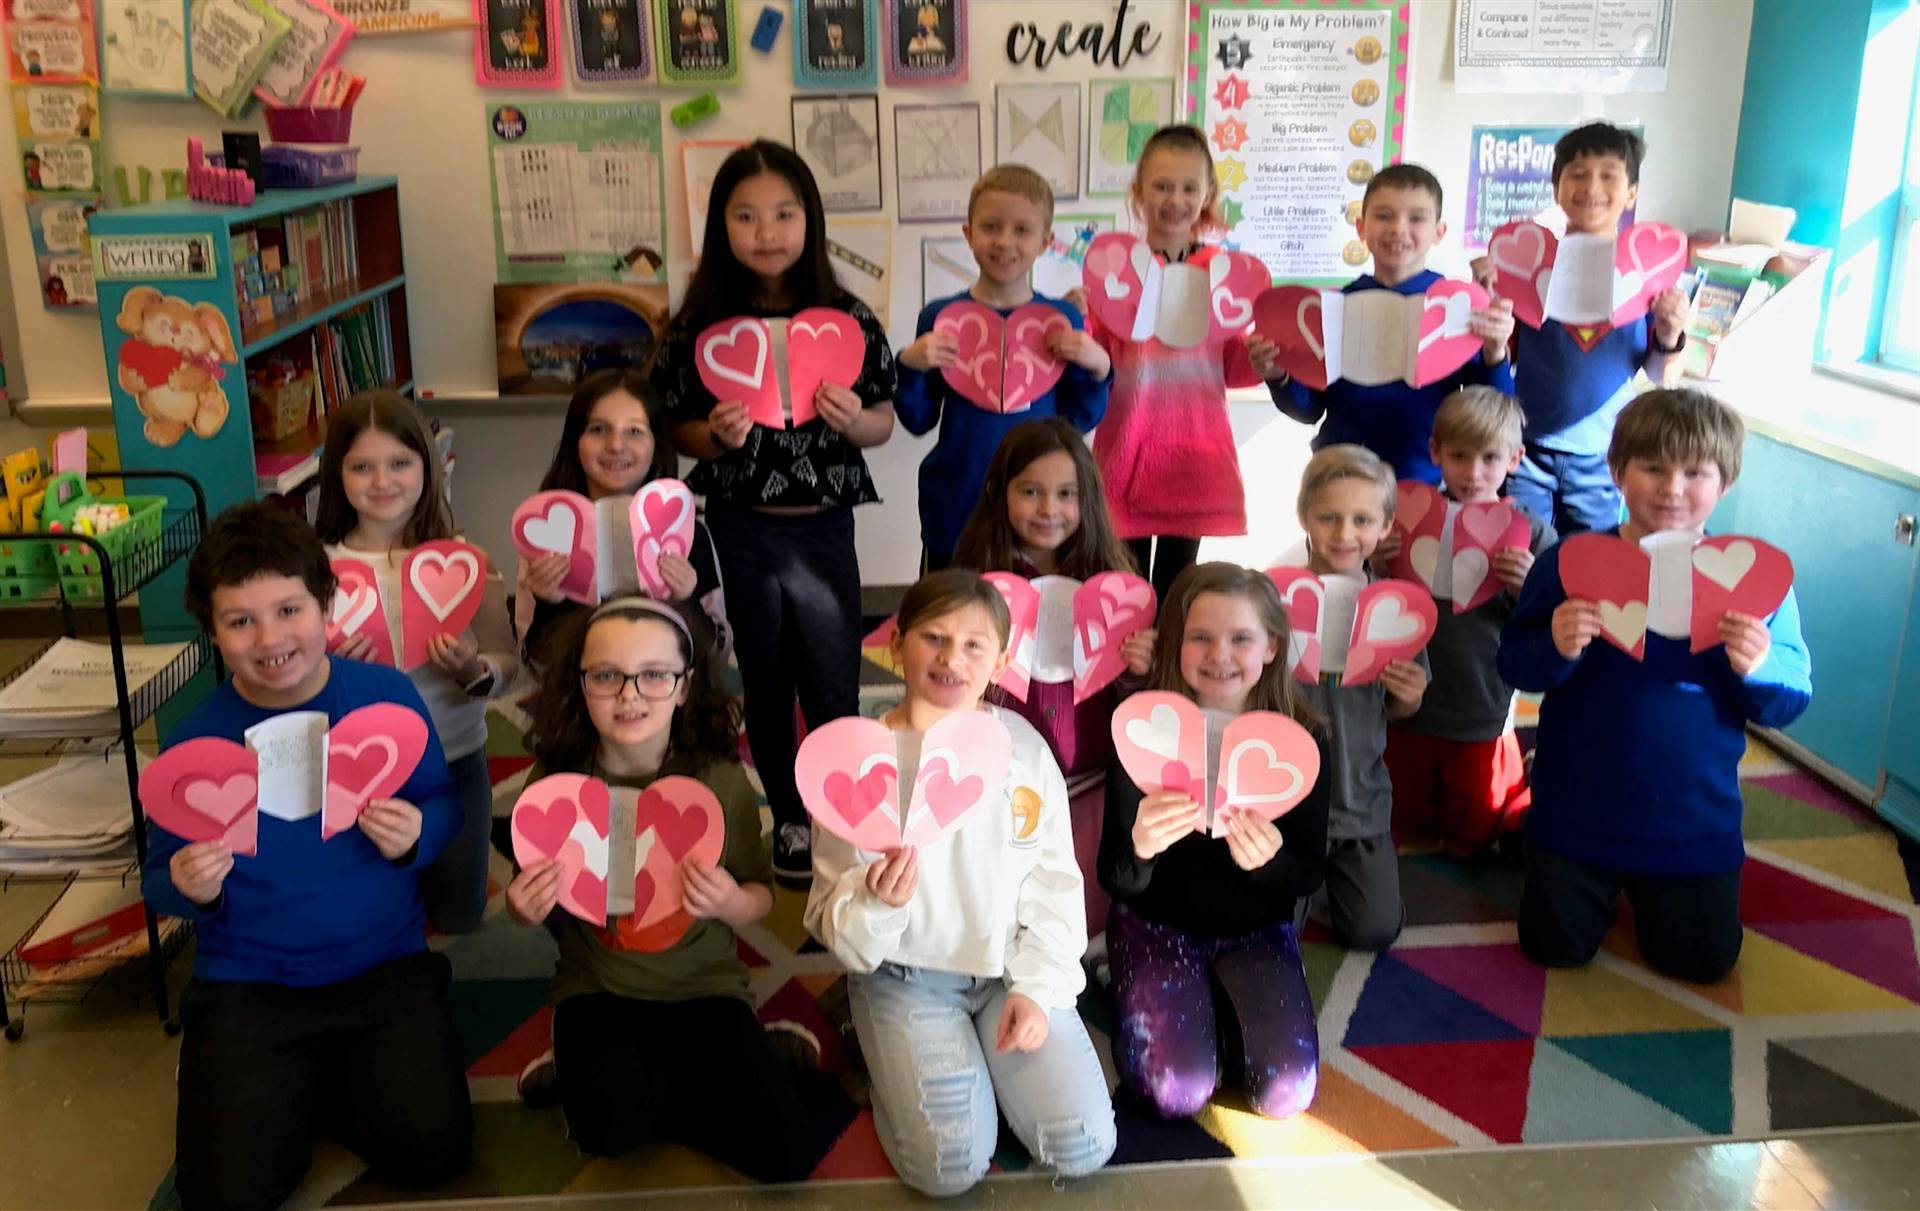 Mrs.-Schnur-s-3C-class-made-Thank-you-notes-for-Animal-Friends